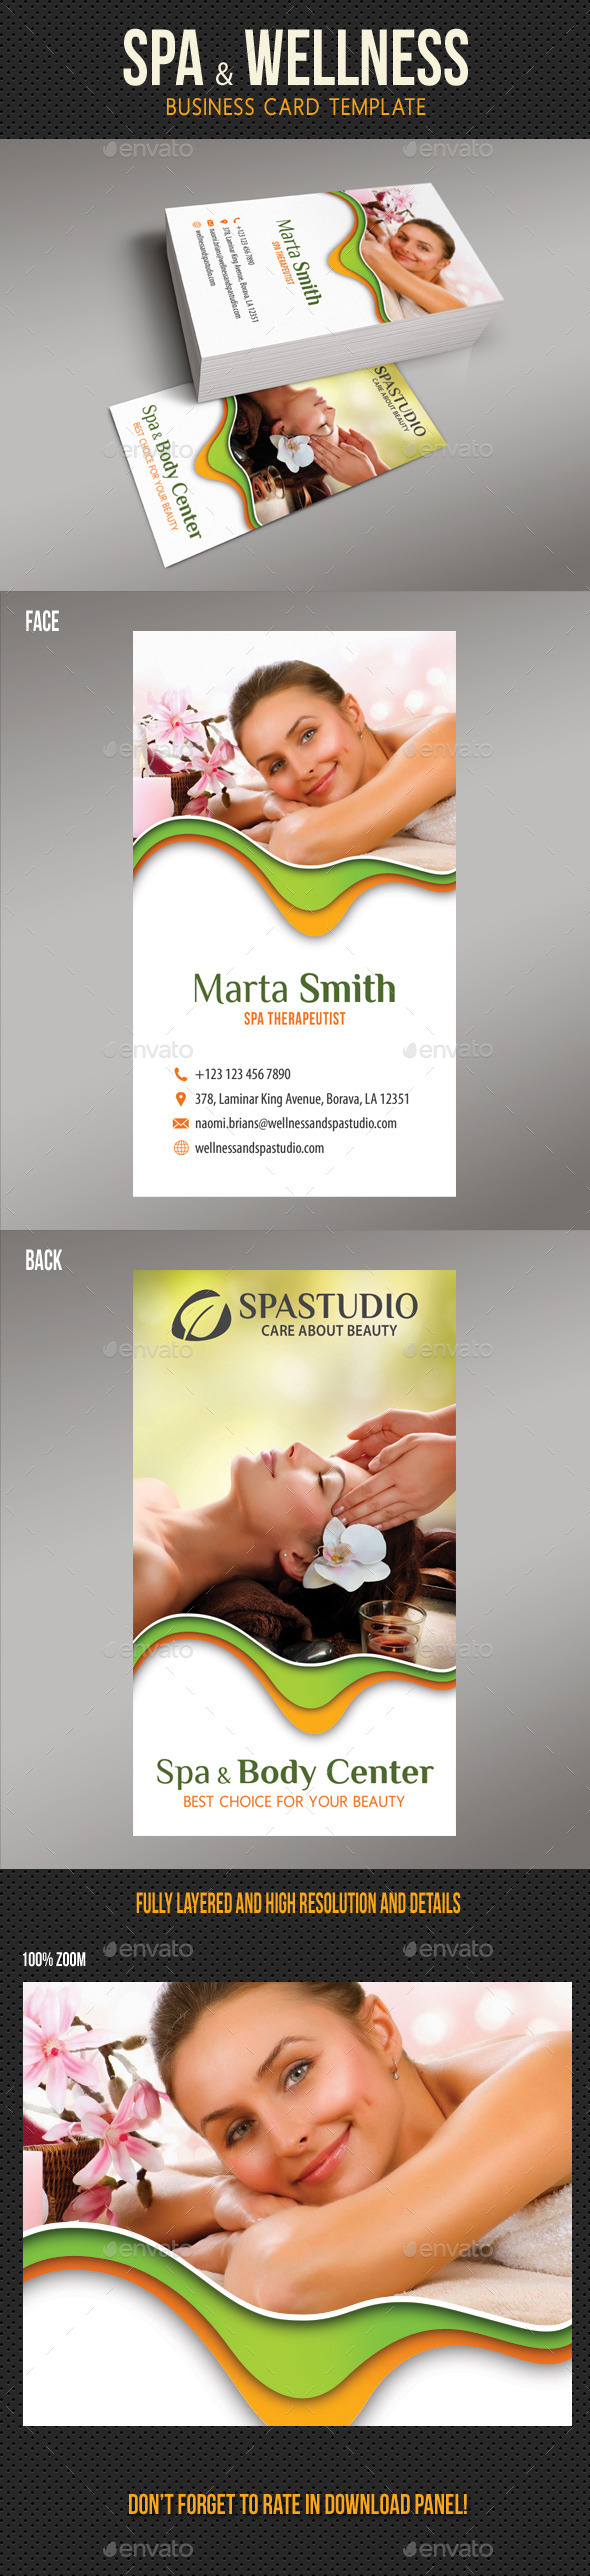 Spa And Beauty Business Card 07 - Industry Specific Business Cards